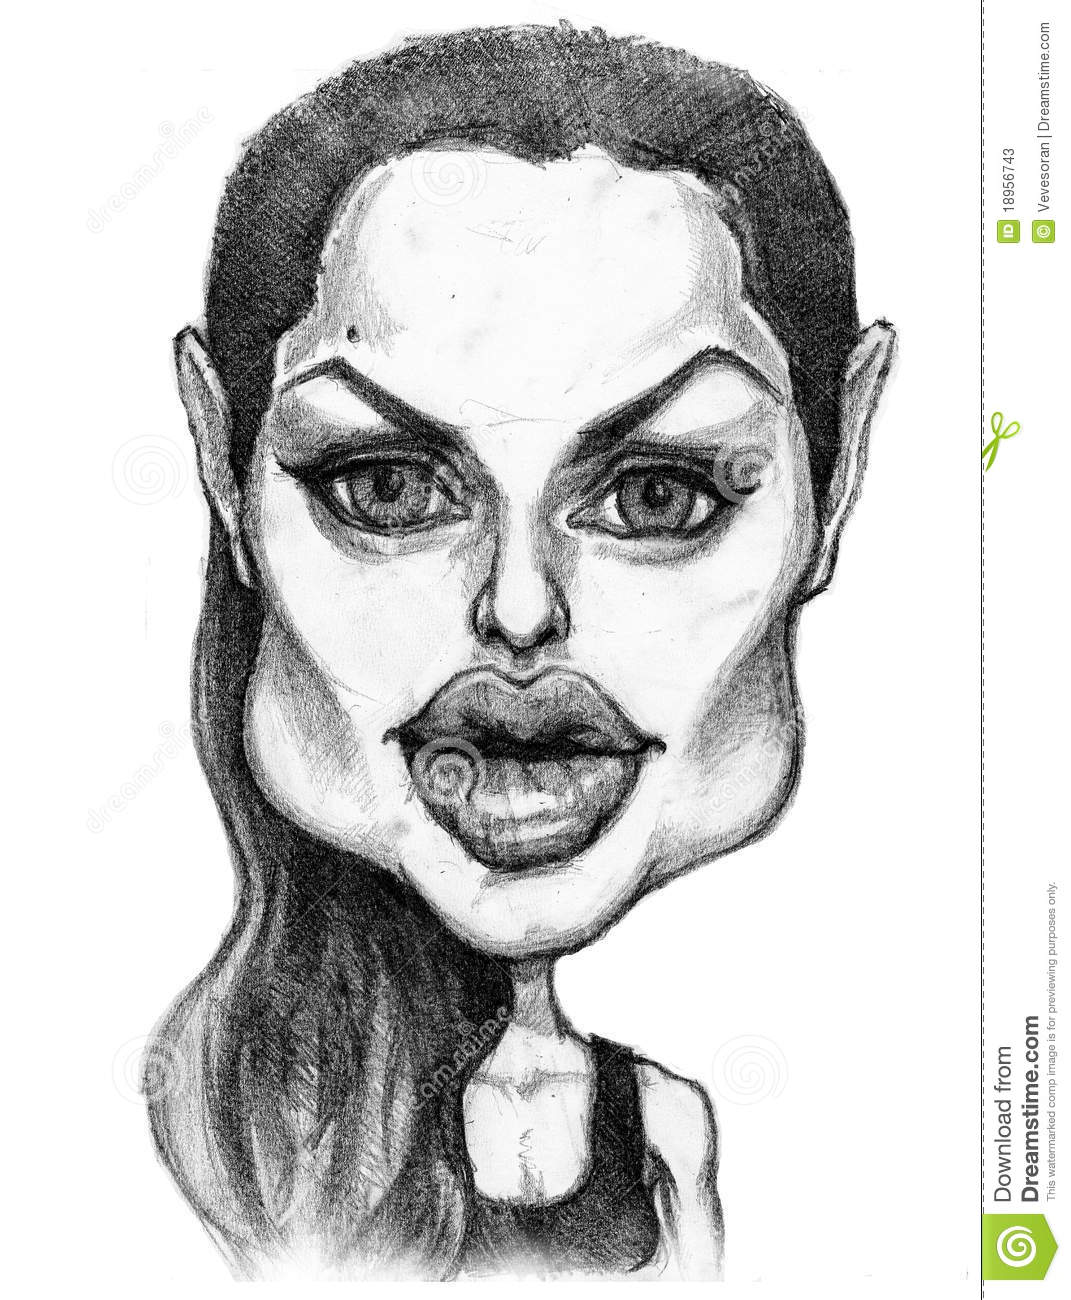 Angelina Jolie Caricature Editorial Stoc-Angelina jolie caricature editorial stock photo. Illustration of actress -  18956743-5